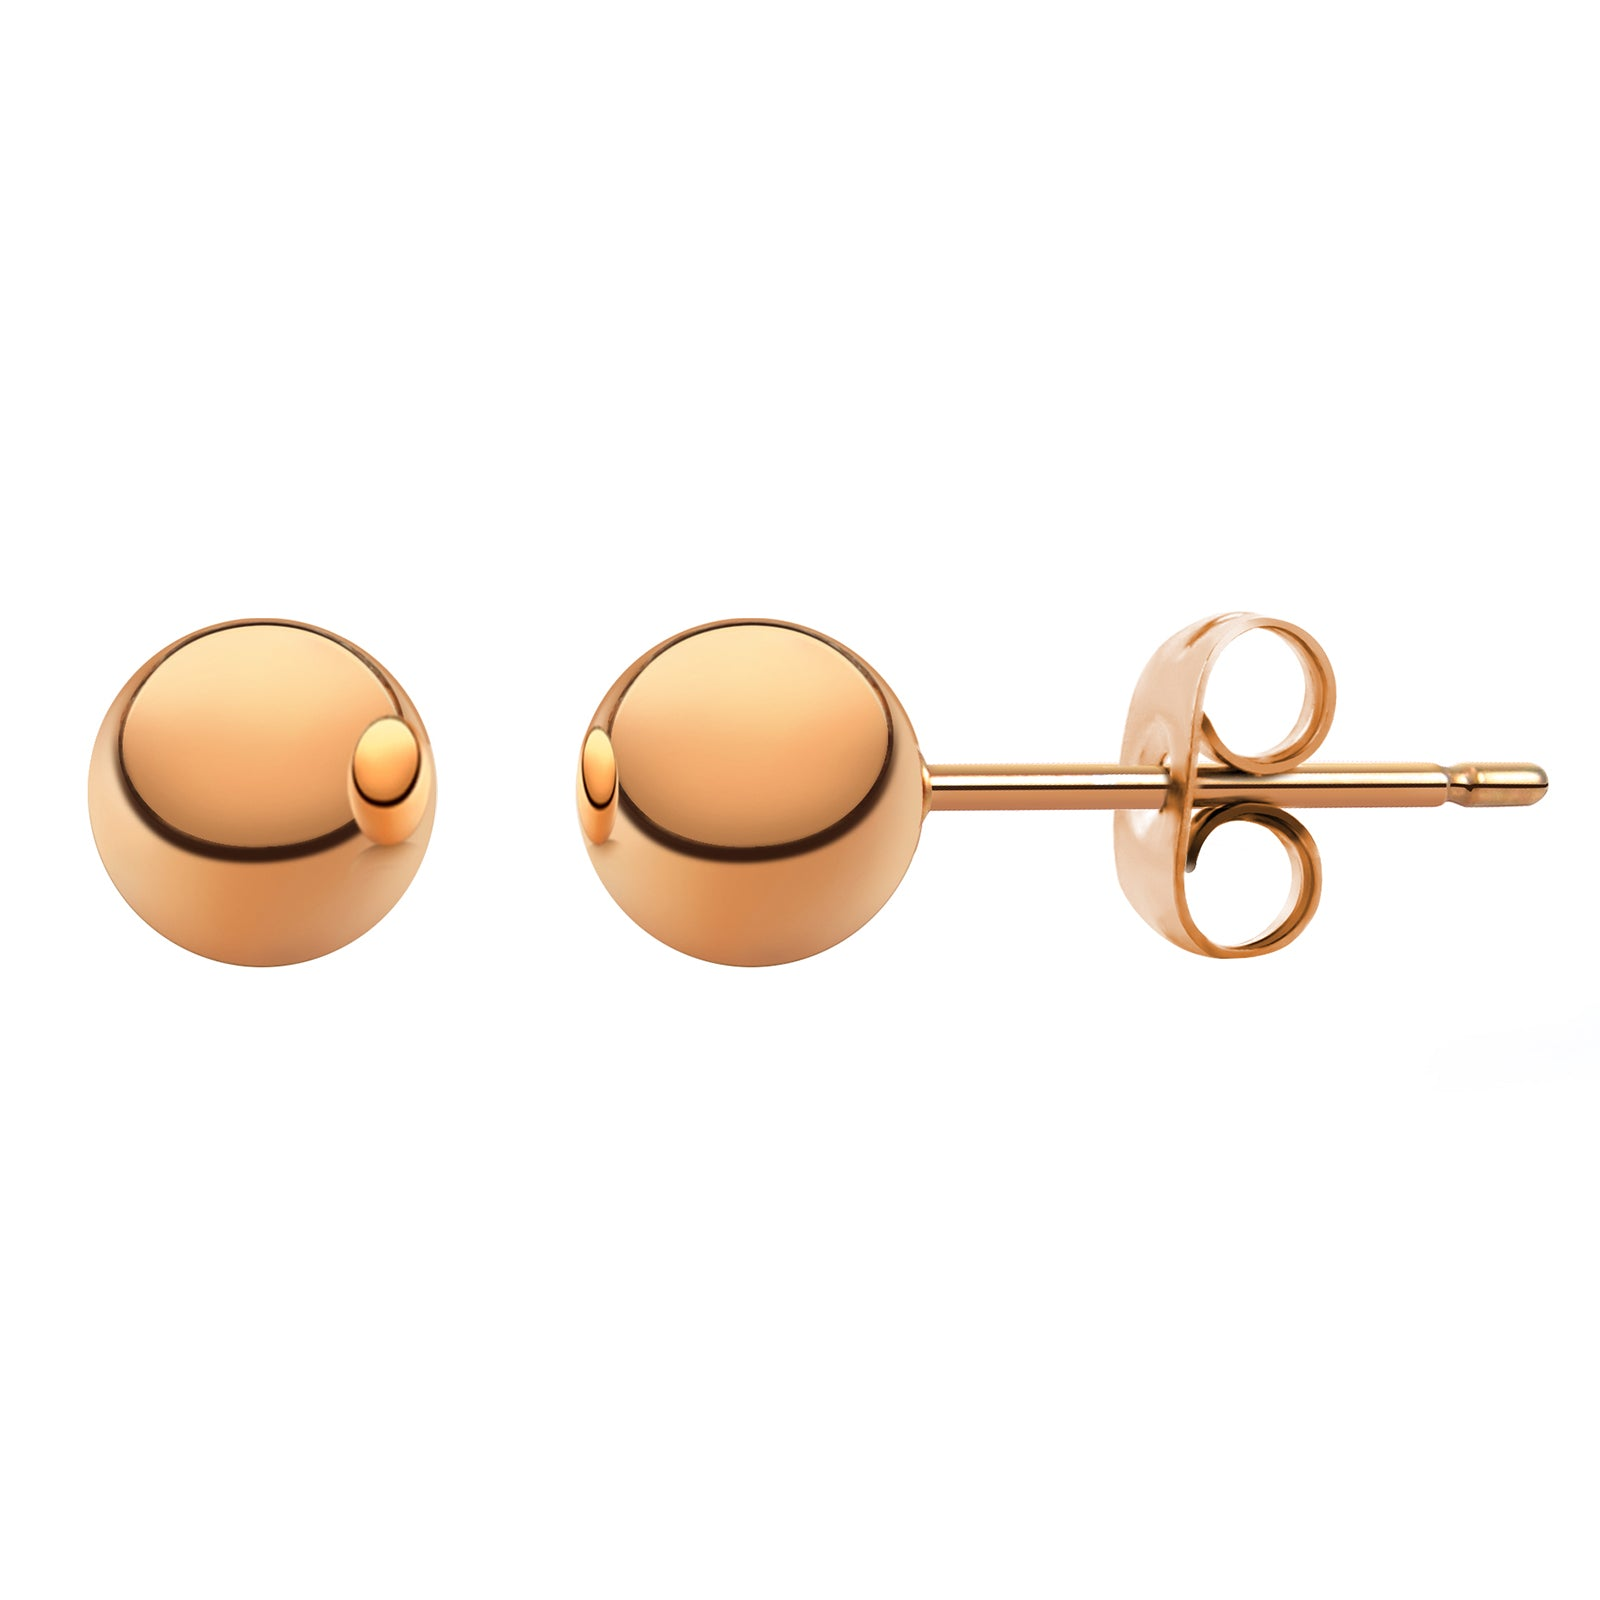 MNC-ER340-C-3mm Steel & Rose Gold Ball Stud Earrings